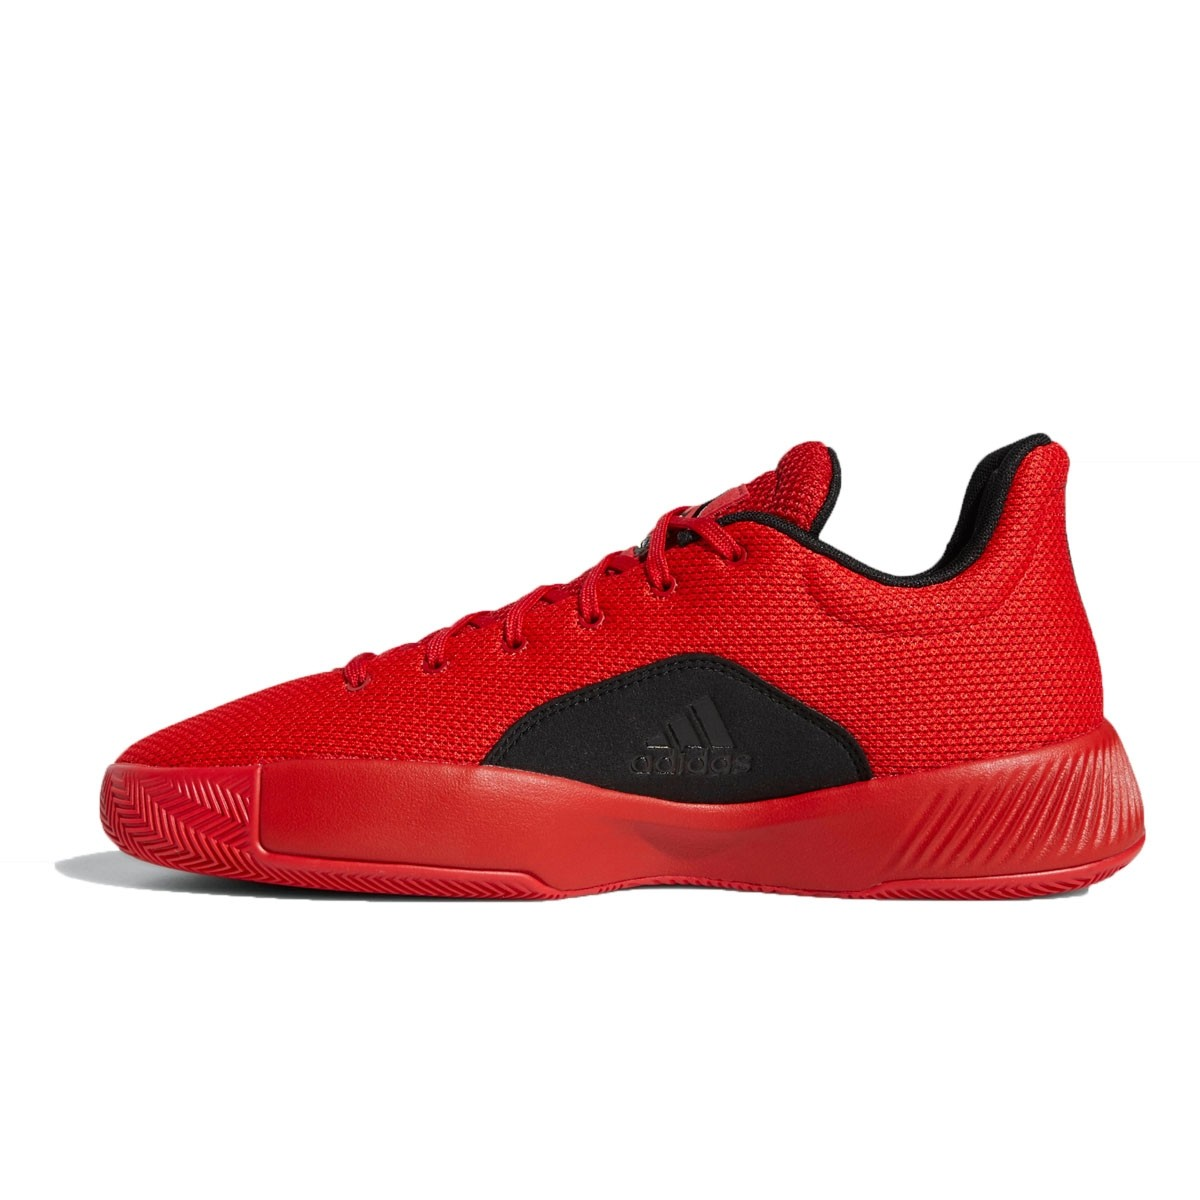 5473cb92a Bujy ADIDAS Pro Bounce Madness Low  Louisville  Basketball shoes ...